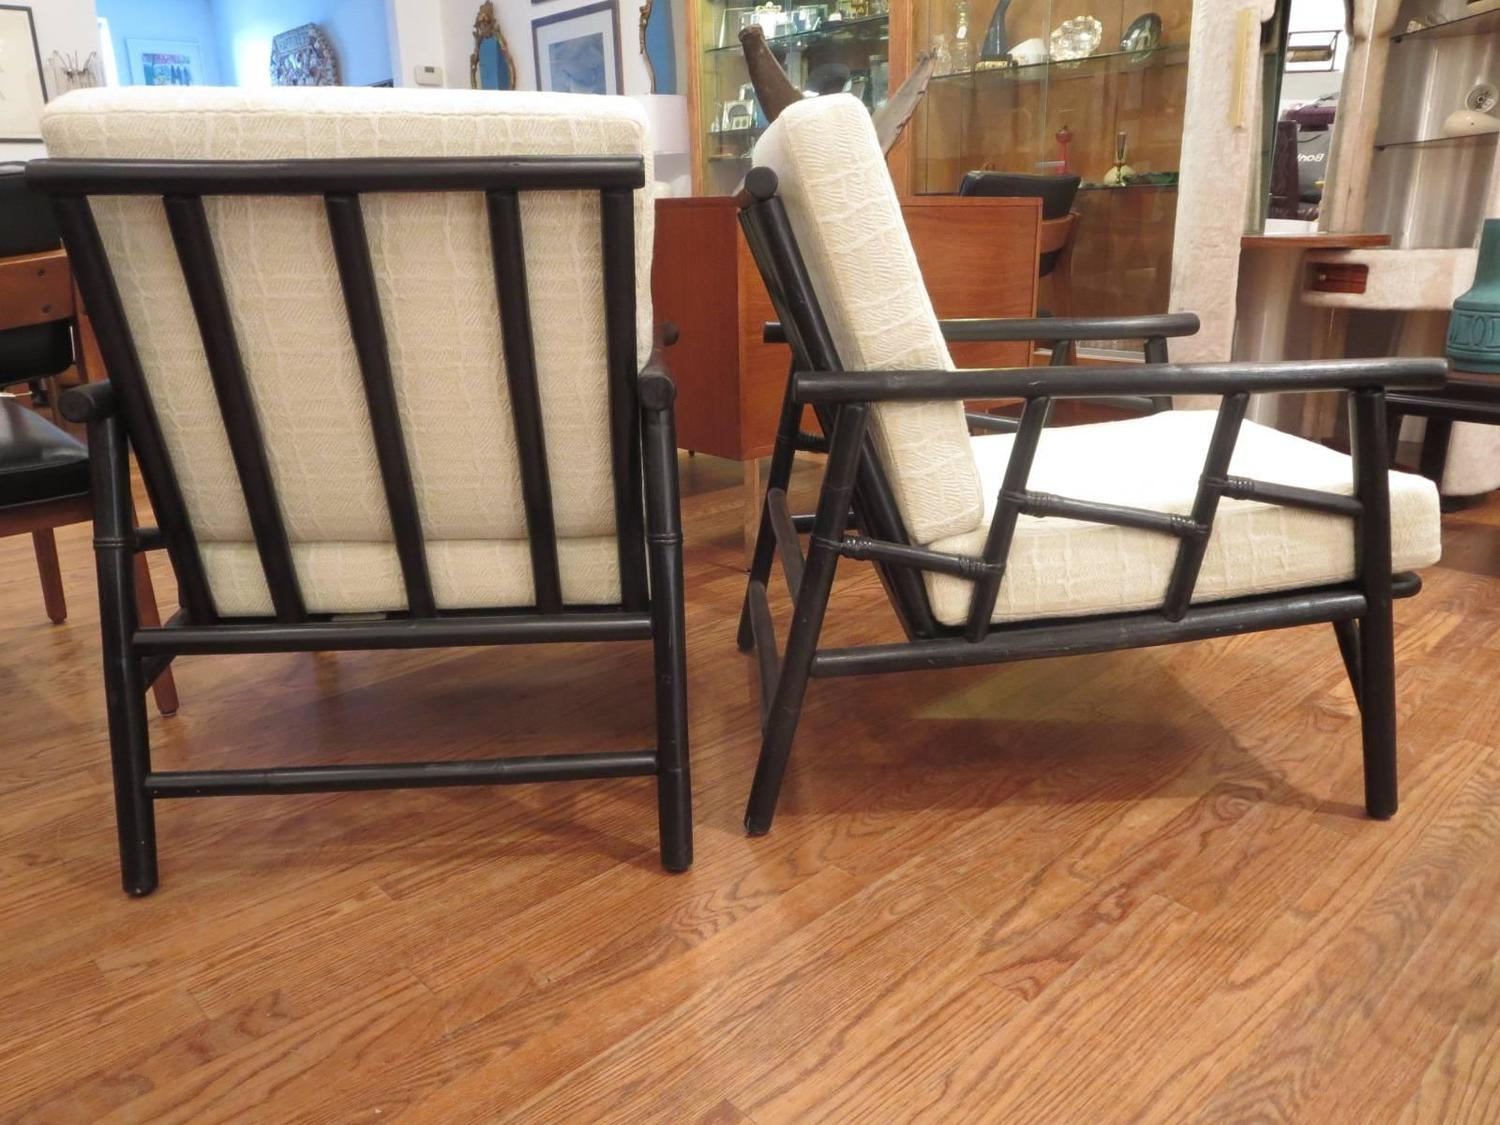 ficks reed chair target lounge pair of rattan chairs at 1stdibs